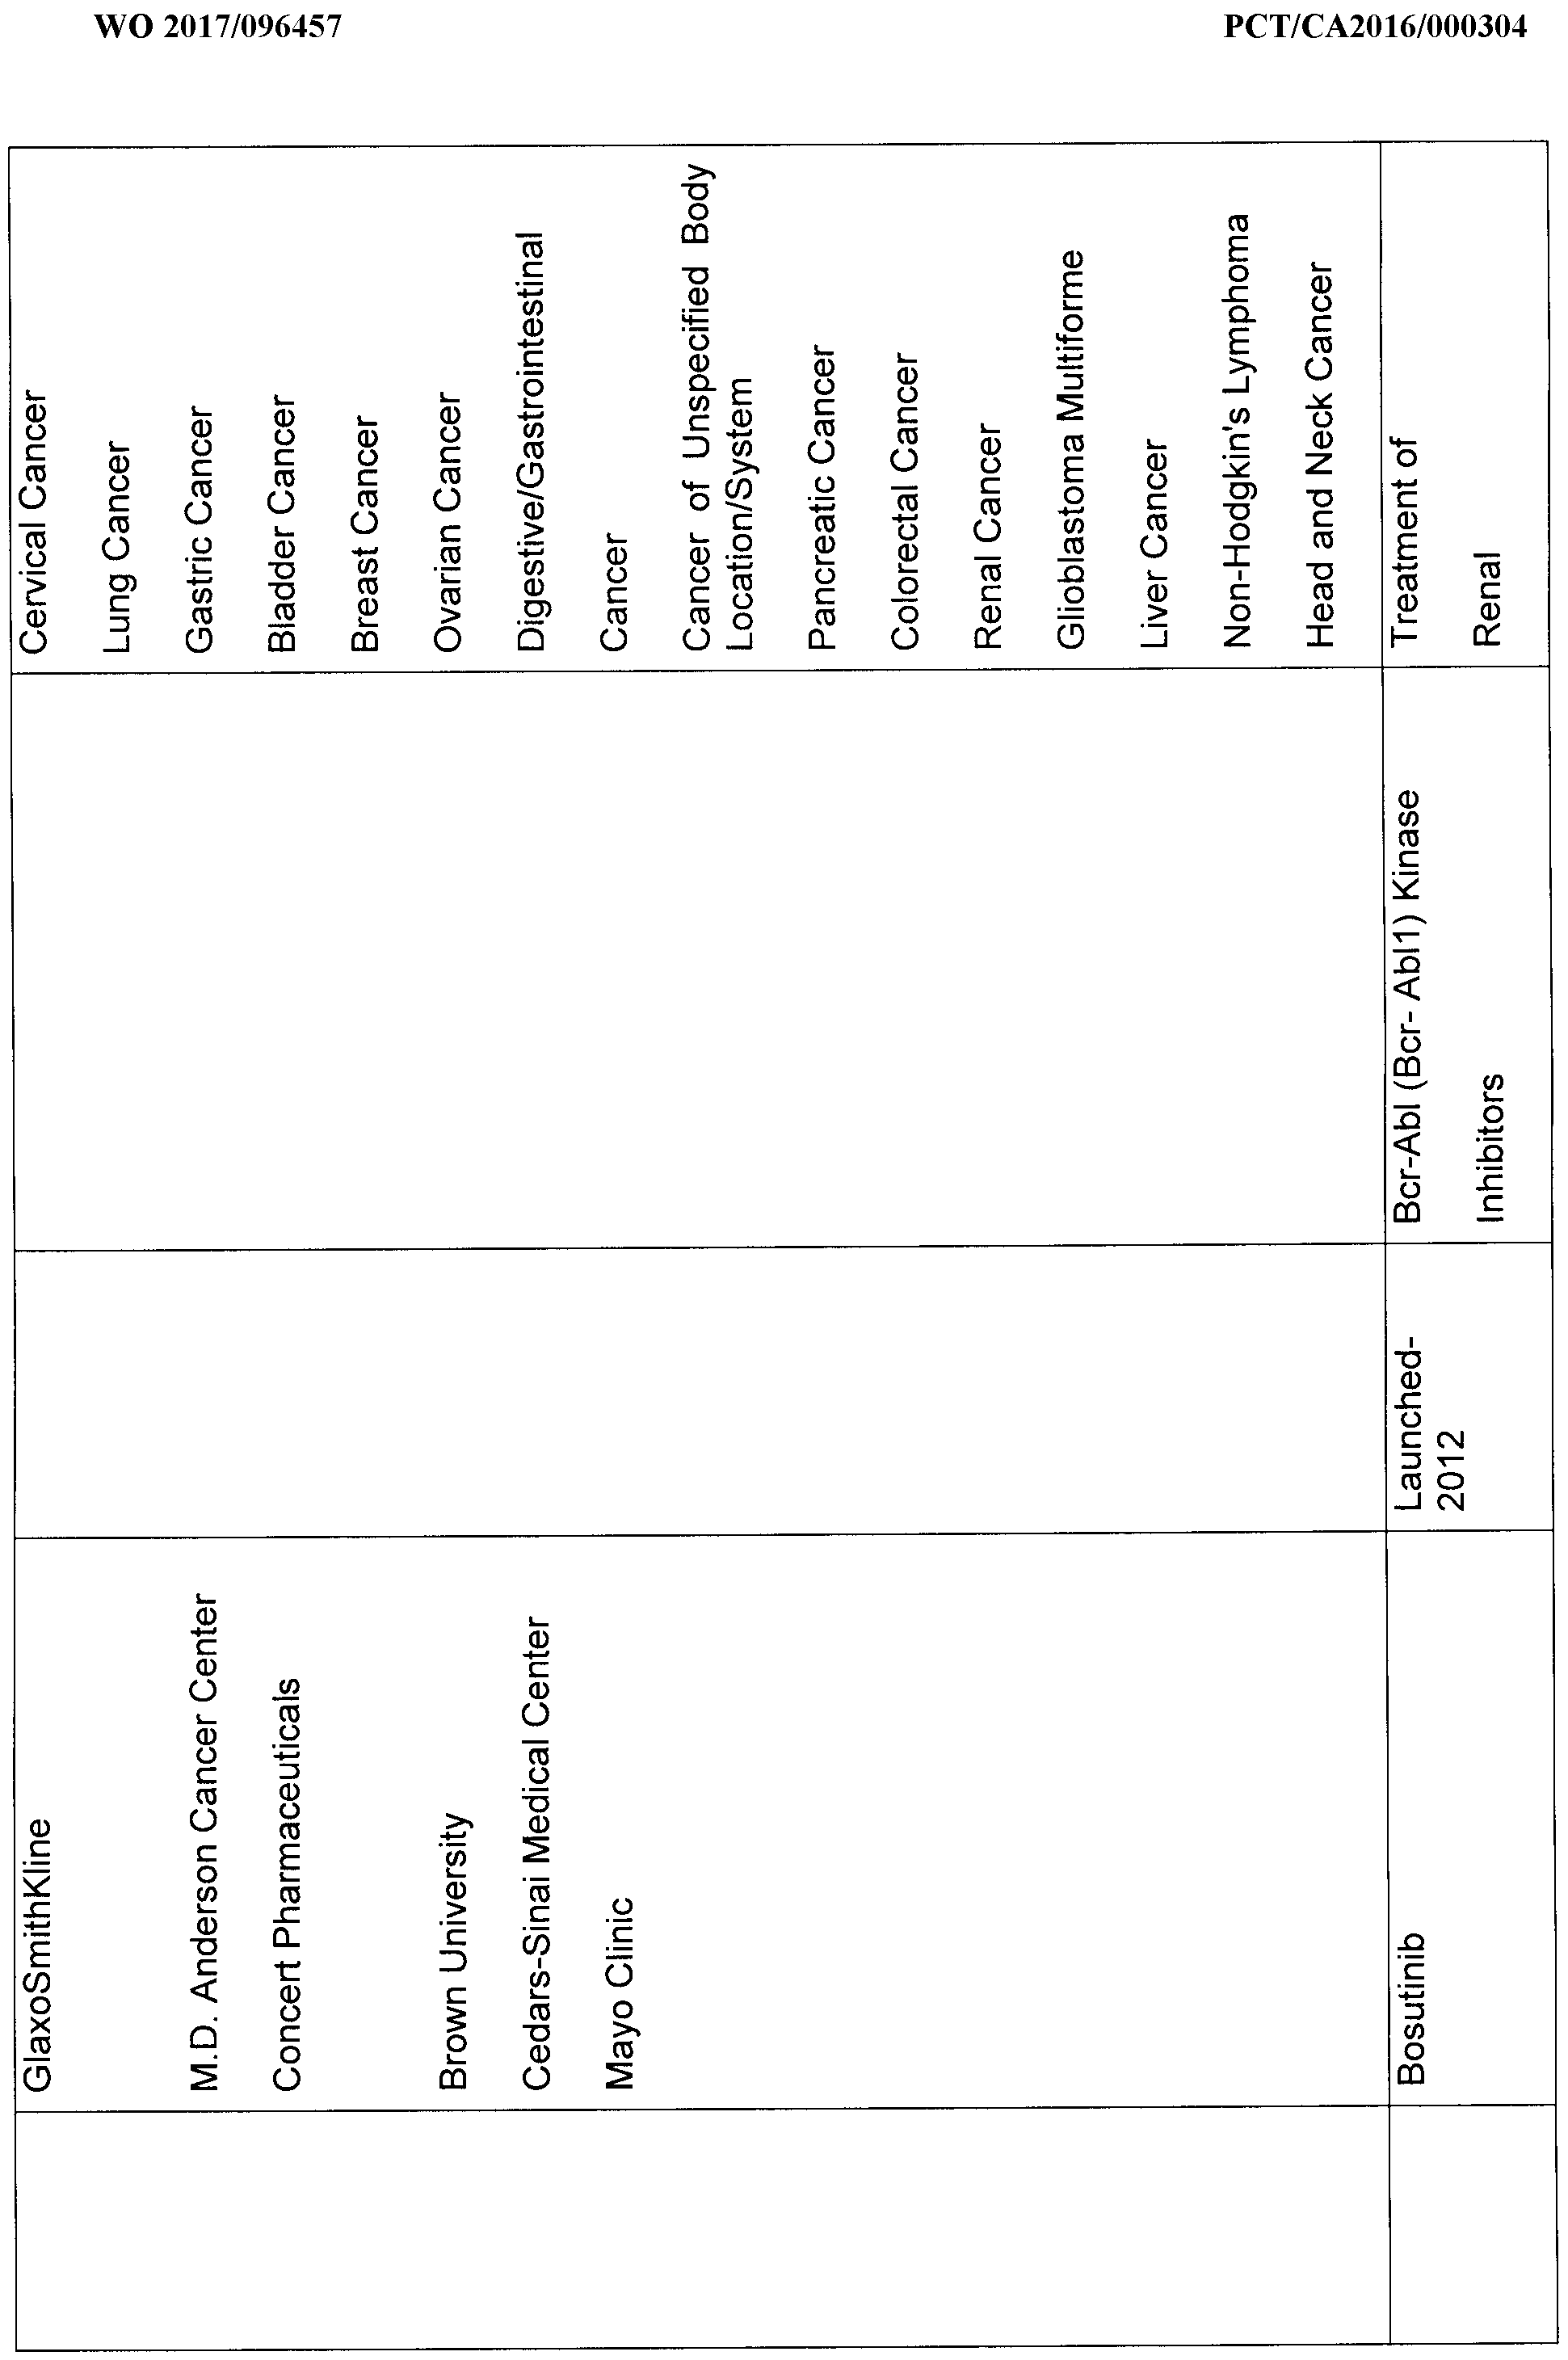 WO2017096457A1 - Gene signature of residual risk following endocrine